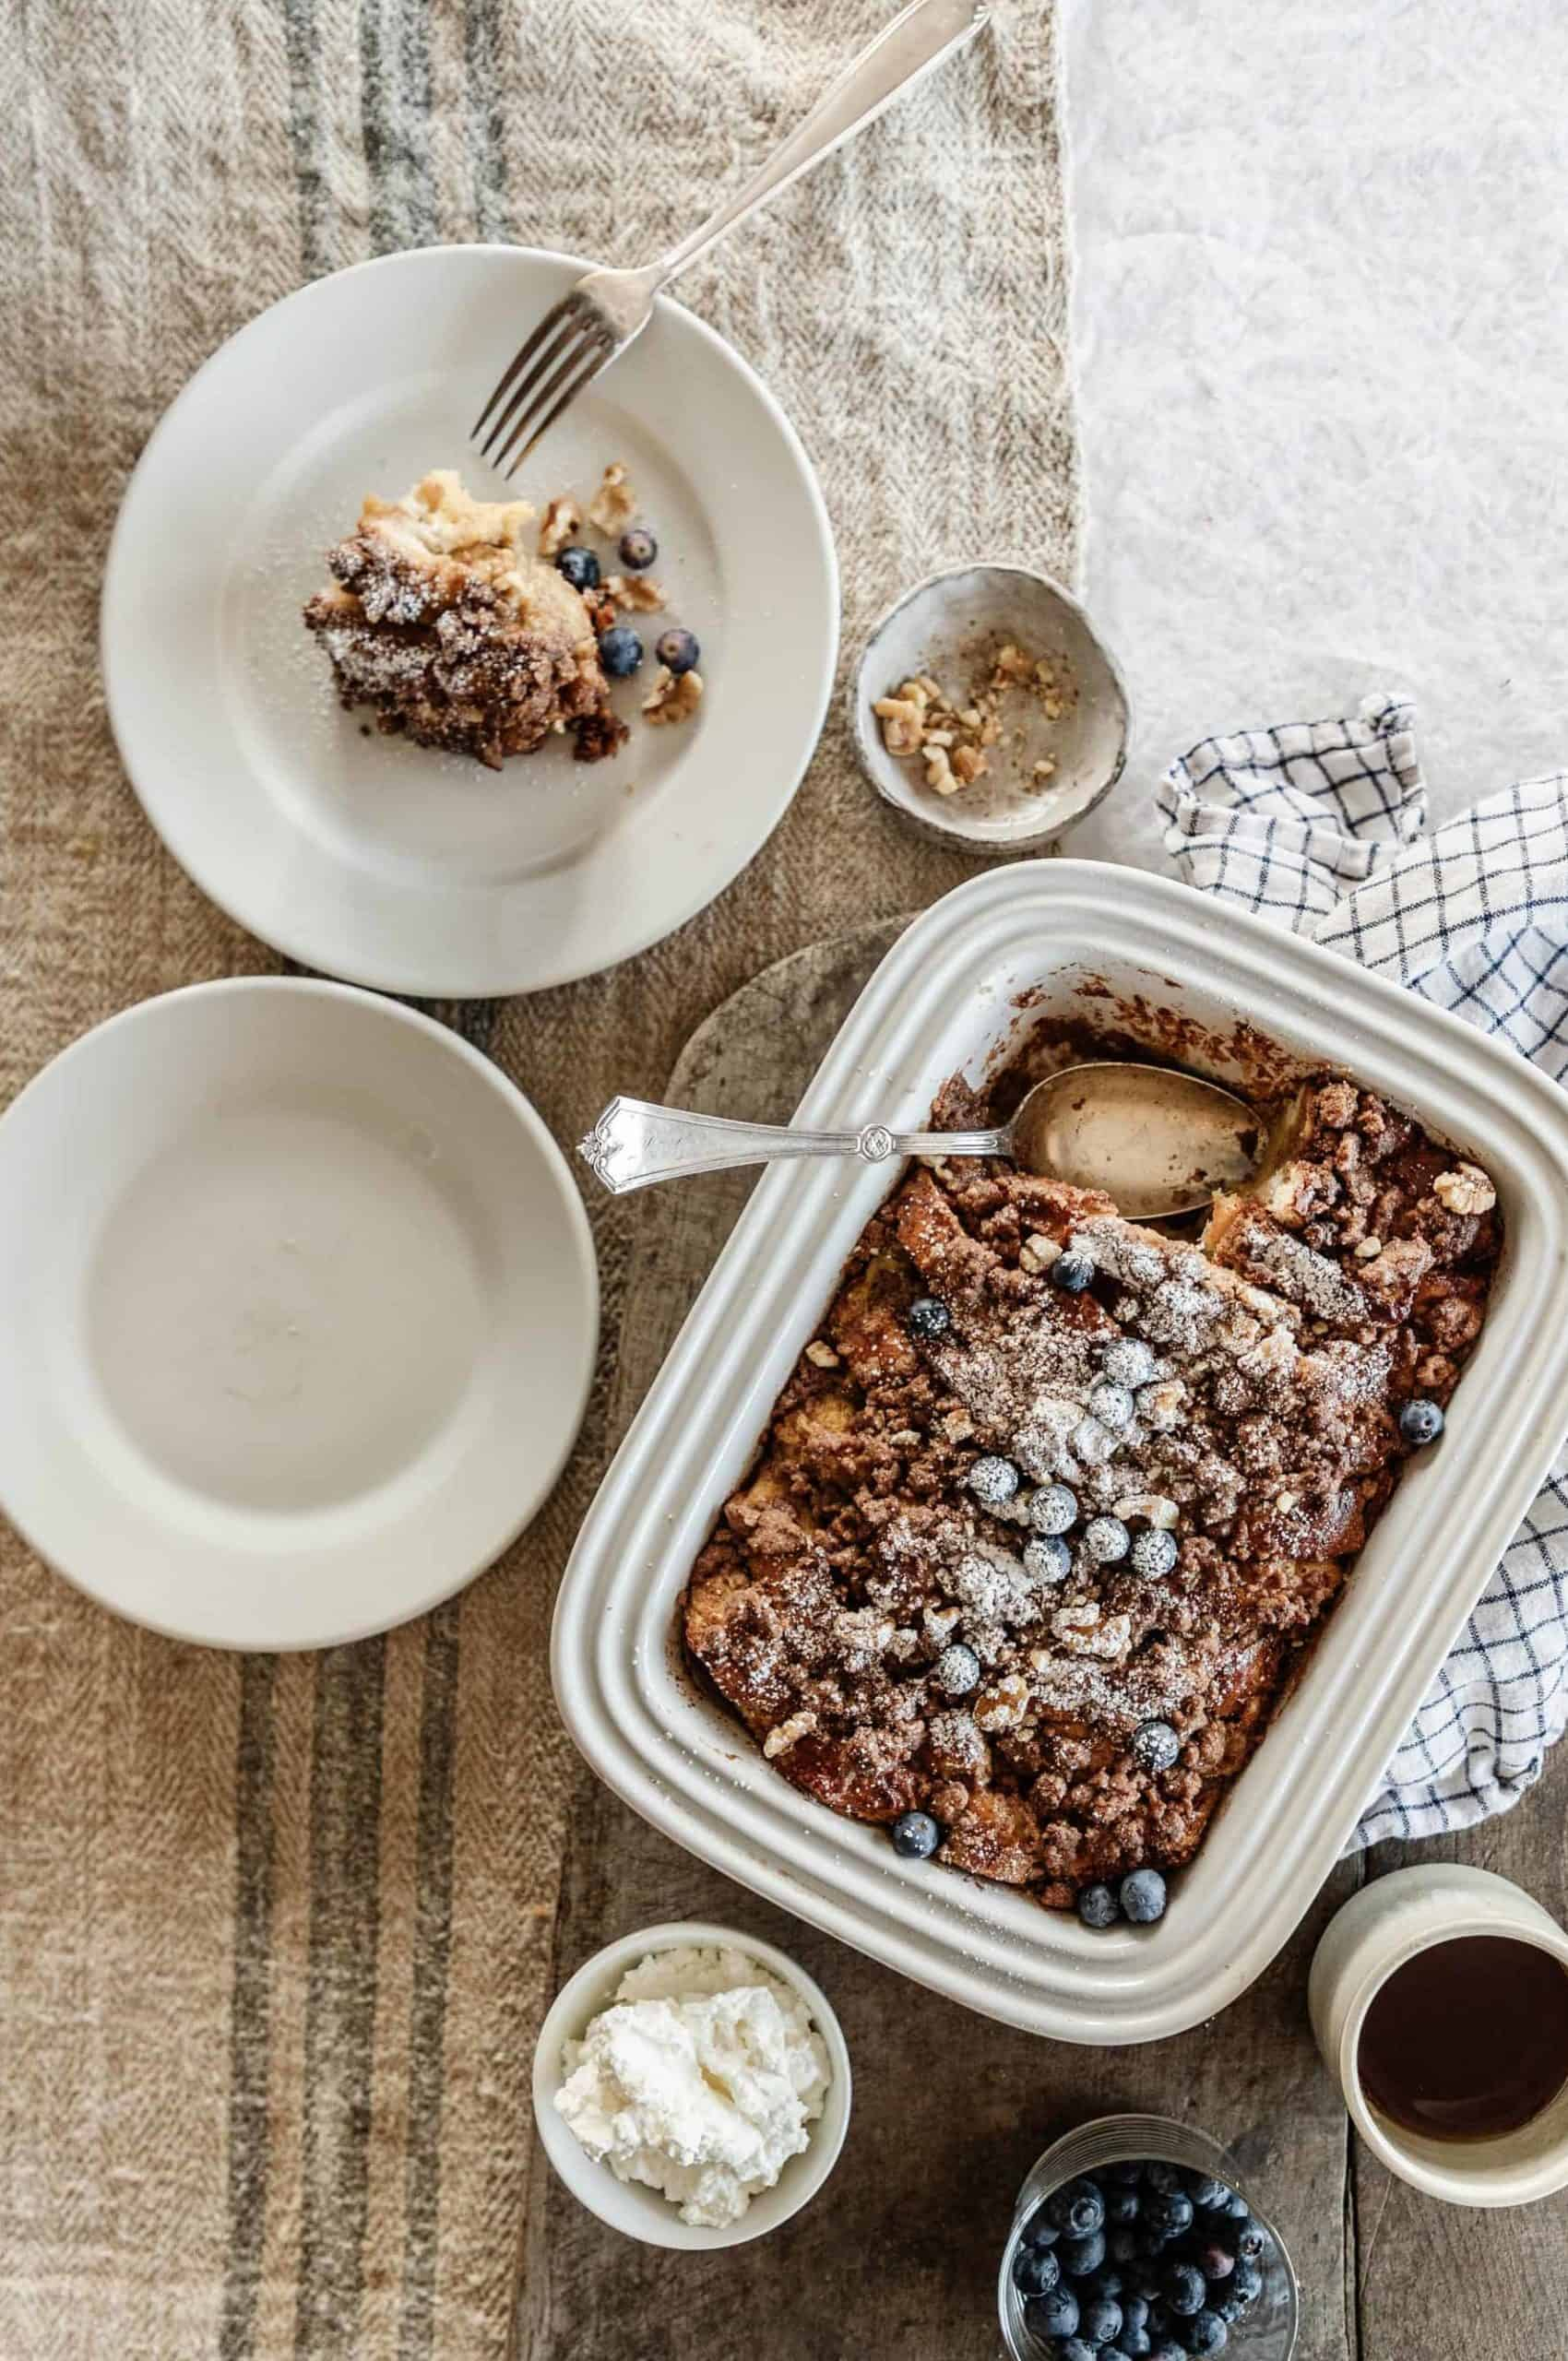 Baked french toast in a white baking dish served with whipped cream, blueberries, maple syrup and topped with powdered sugar.